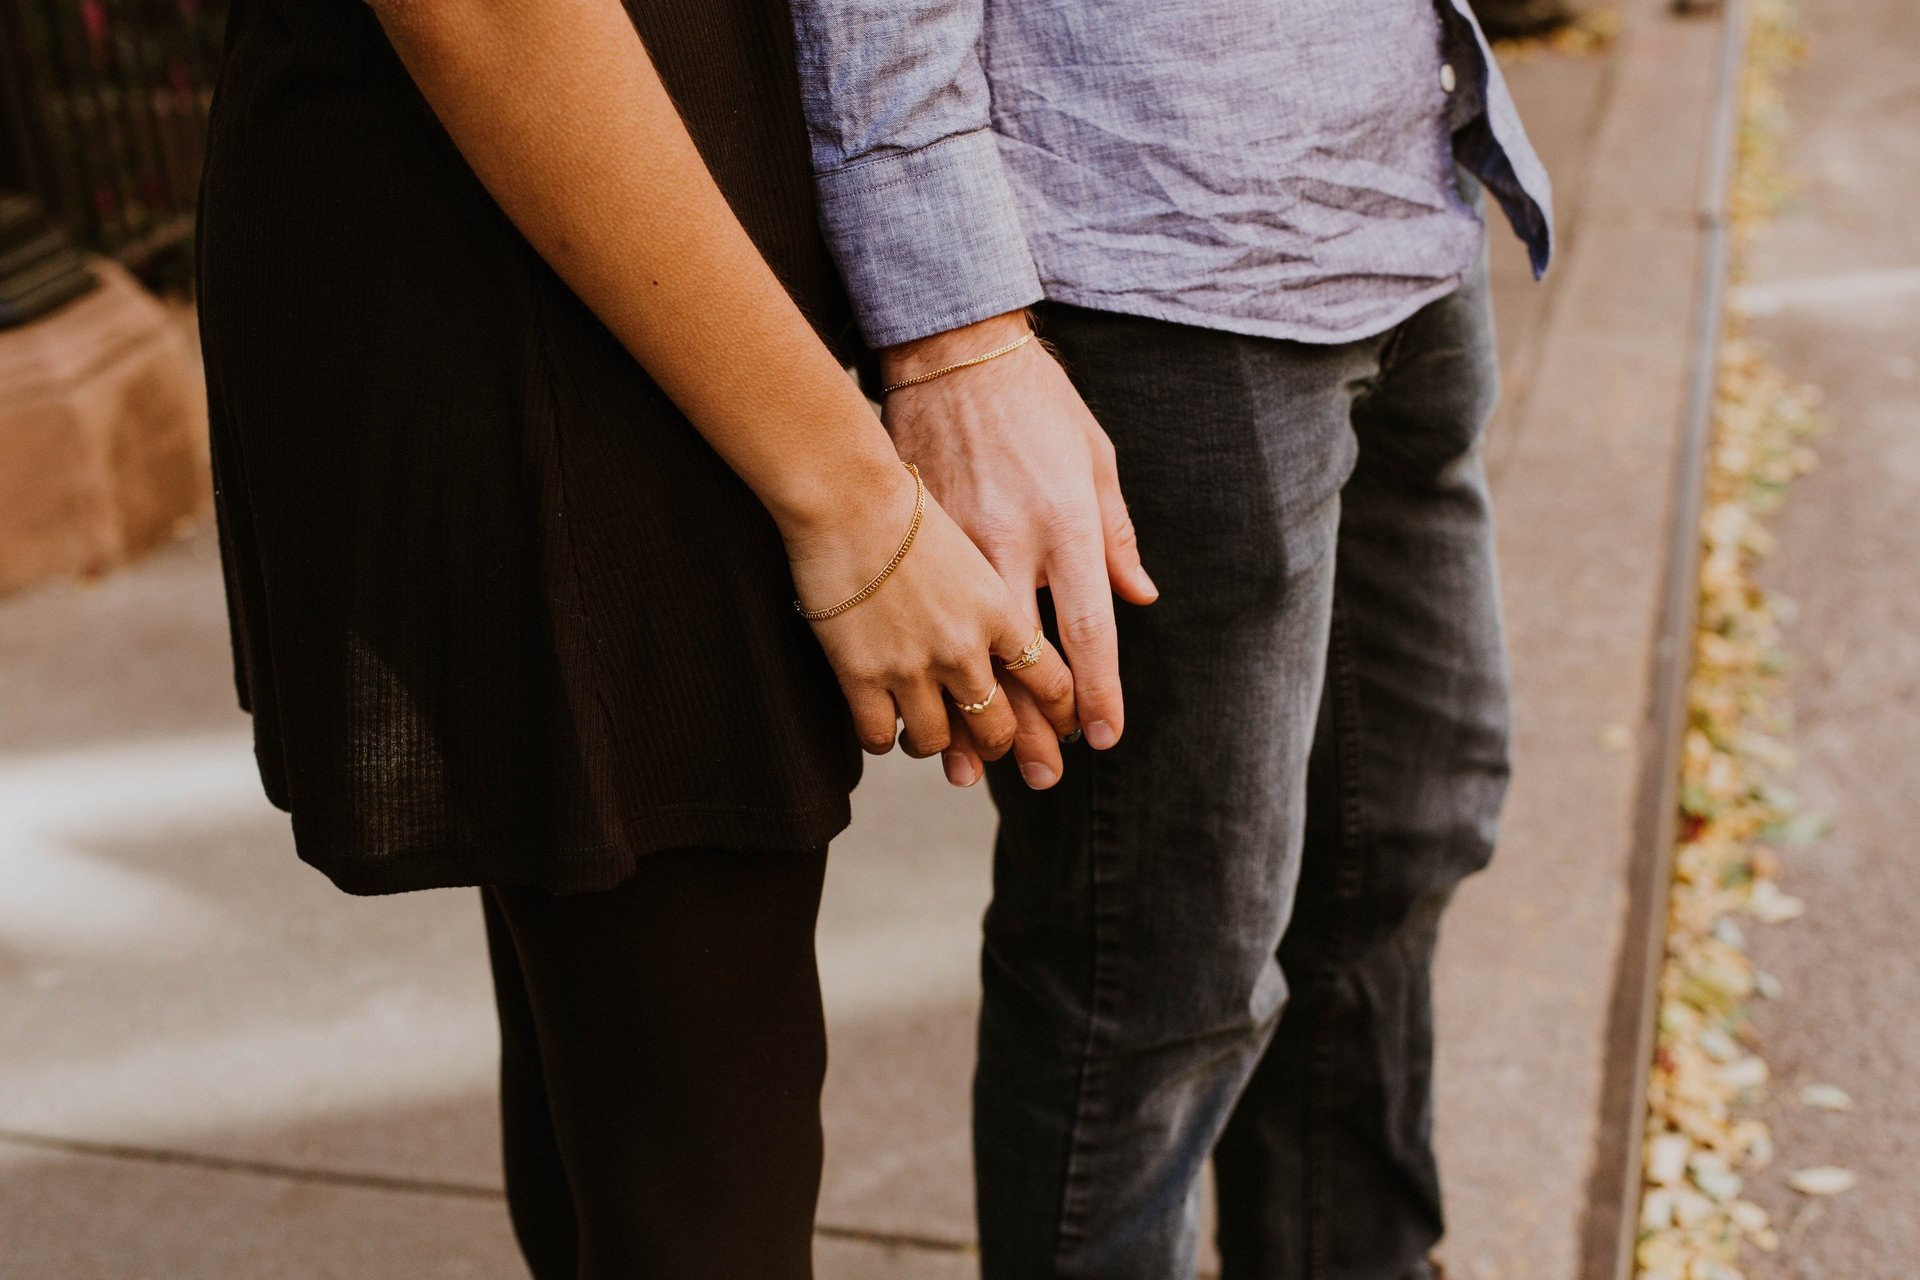 couple holding hands  after relationship counselling